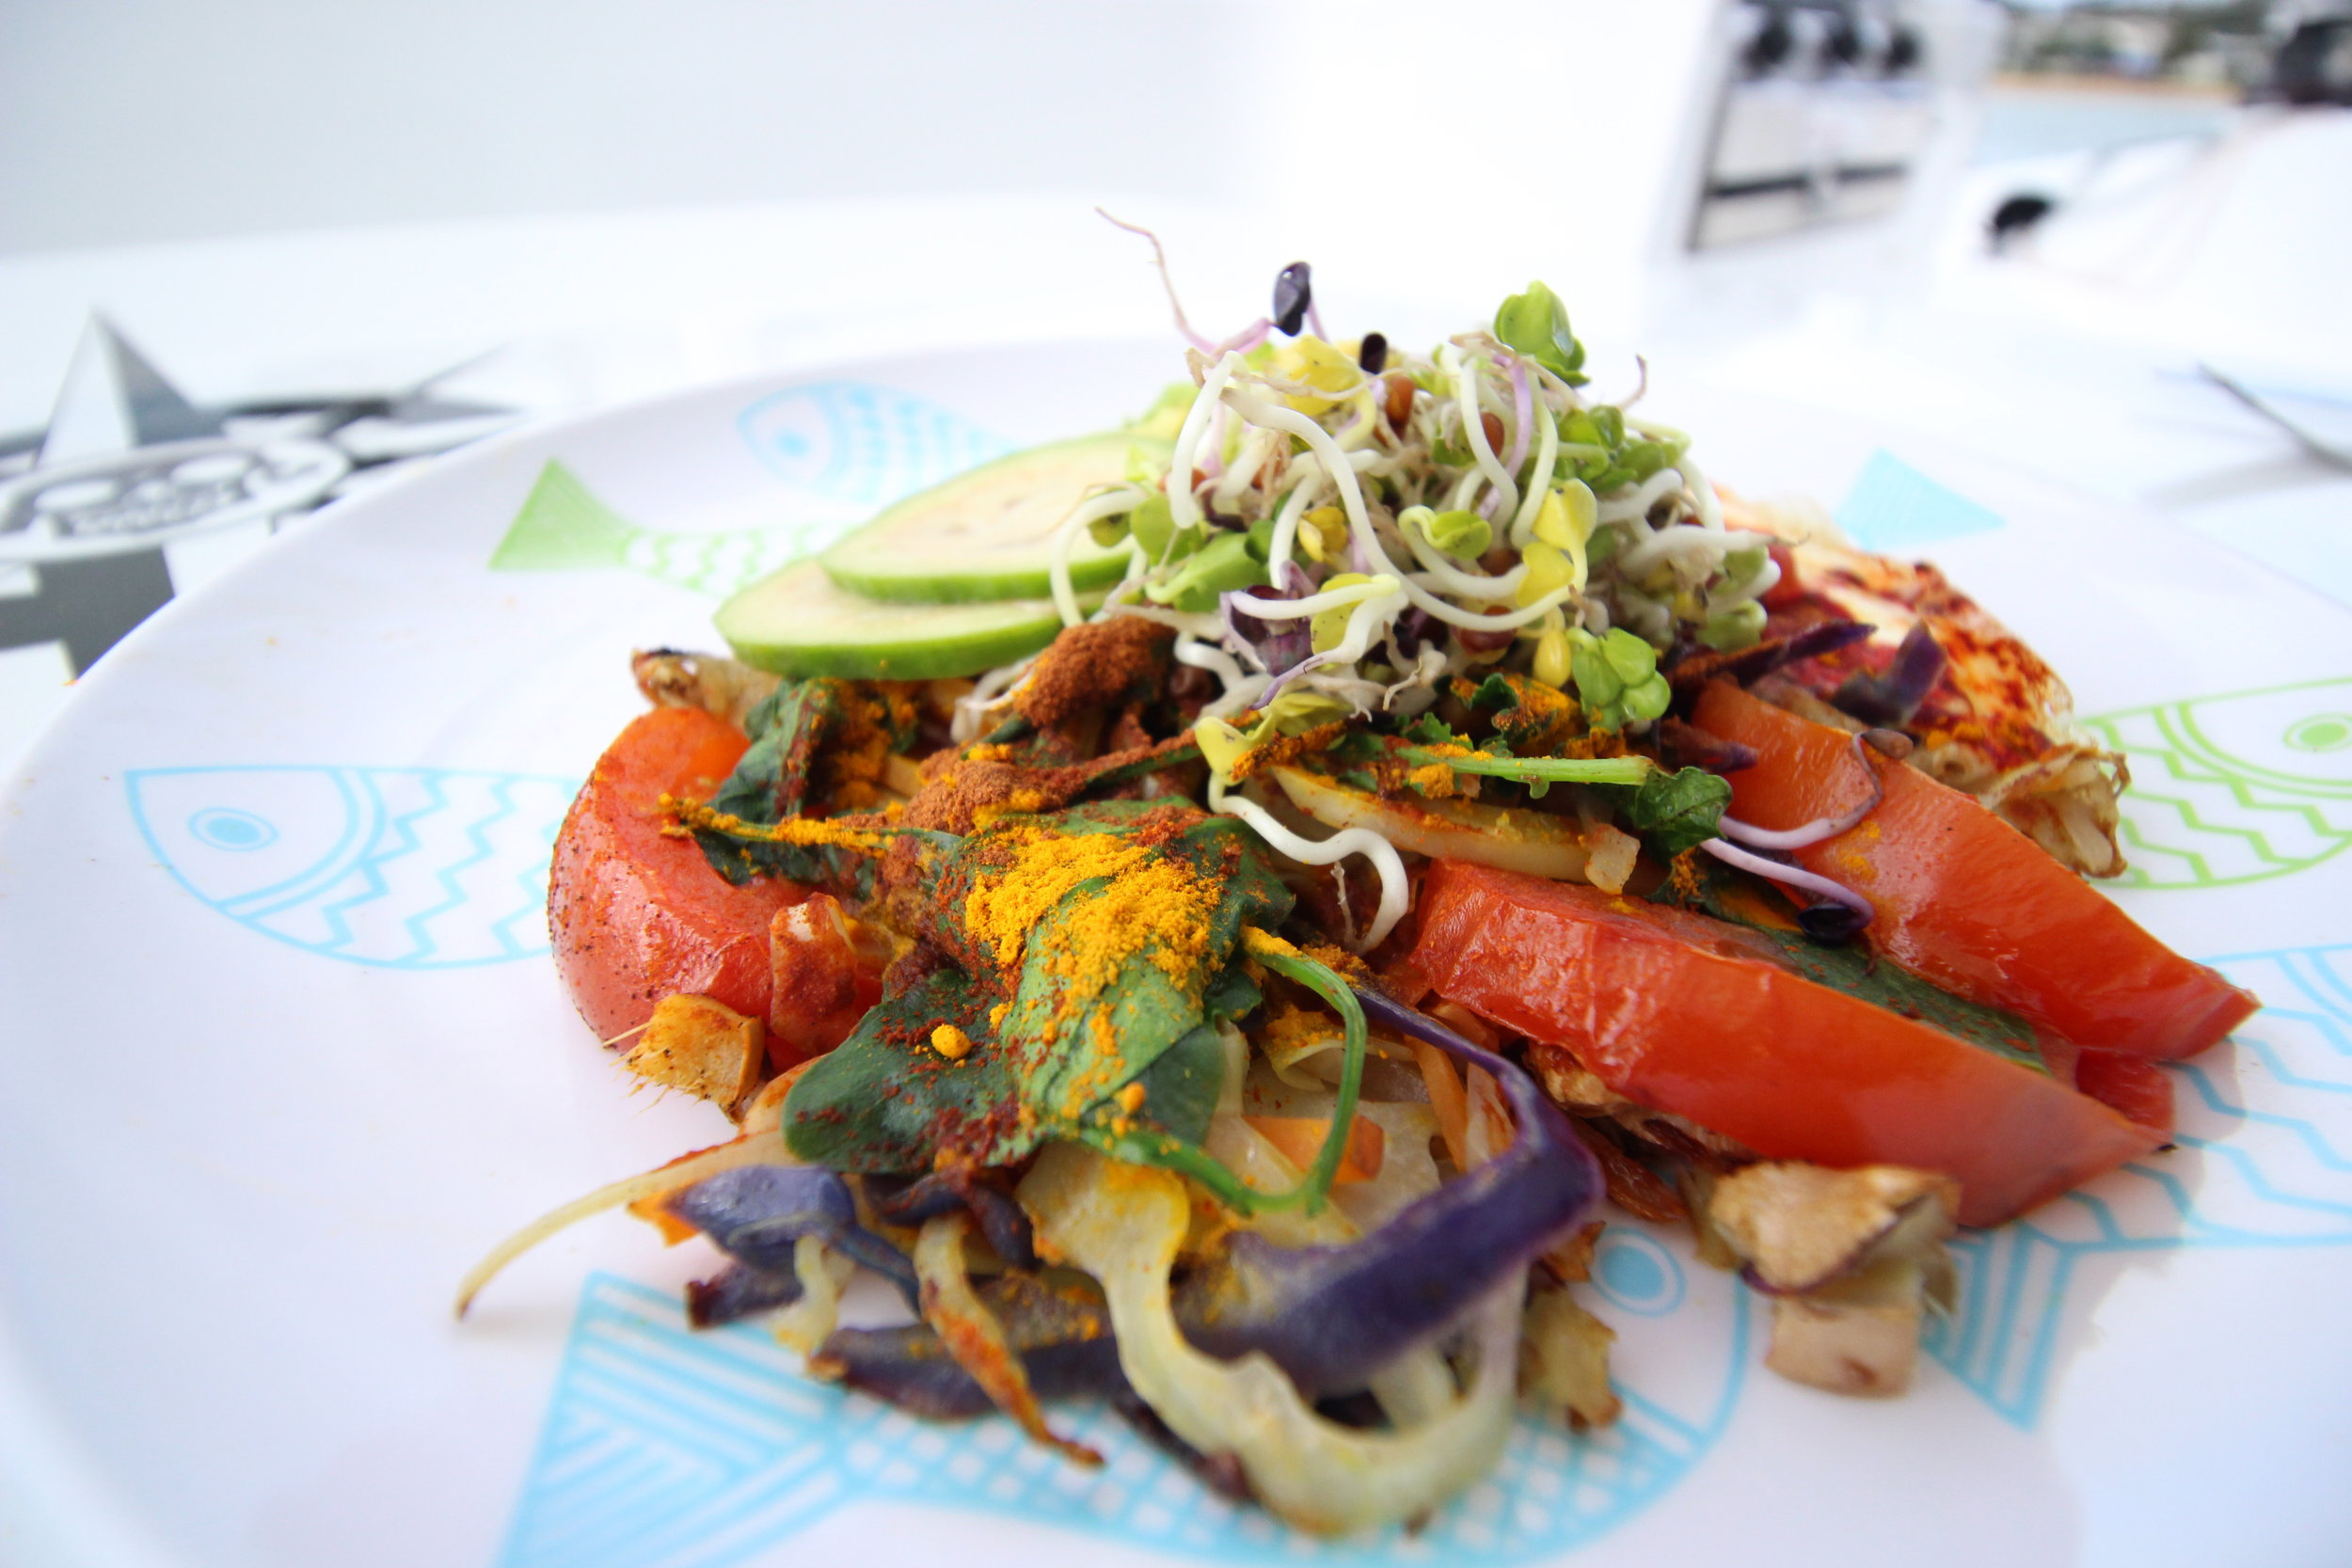 """A typical first meal of the day for us, some would call it """"breakfast"""". A plate full of goodness, vegetables, healthy fats and protein topped with tumeric."""